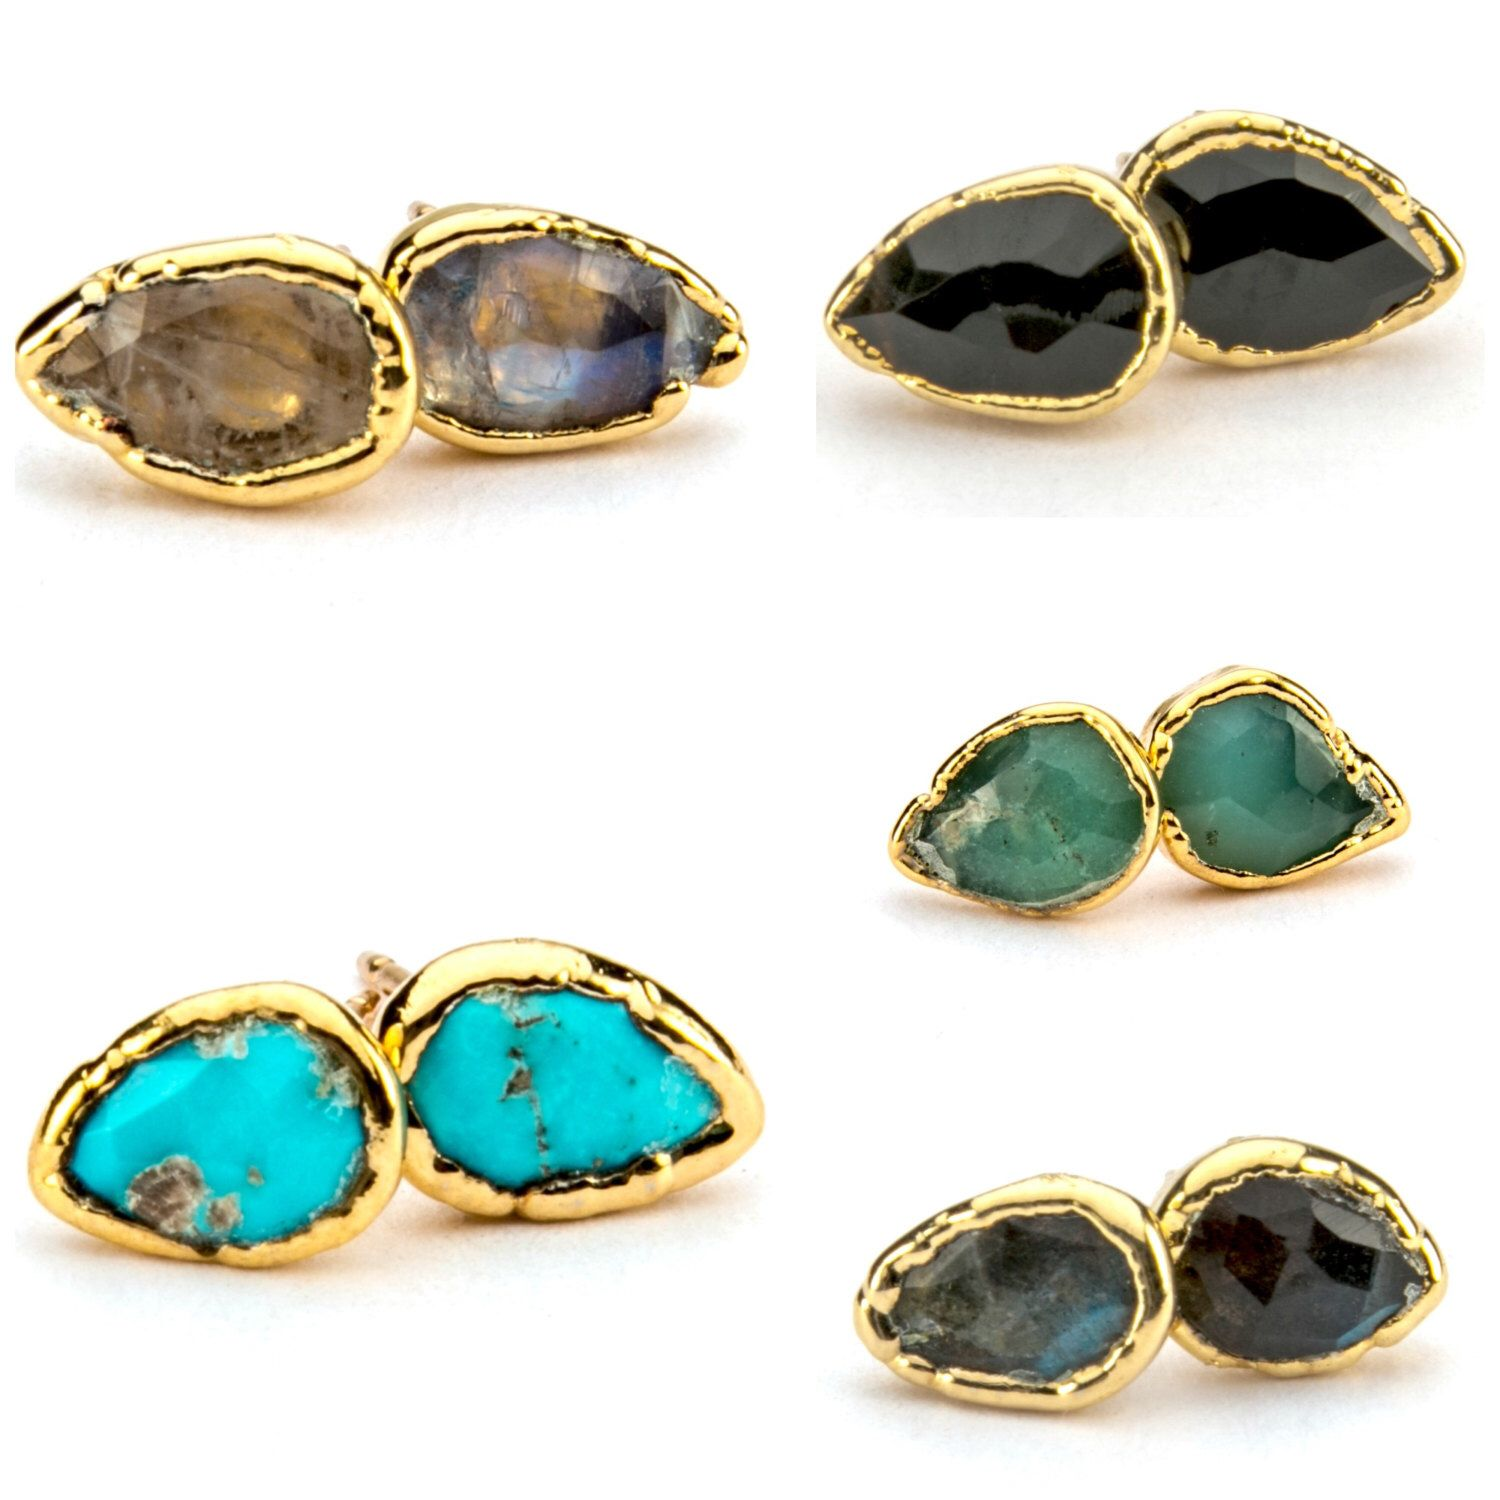 agate aquamarine jewelry docona handmade stud tiger pendientes brincos round quartz for women candy from item fashion earrings natural earring trendy in studs stone eye gems